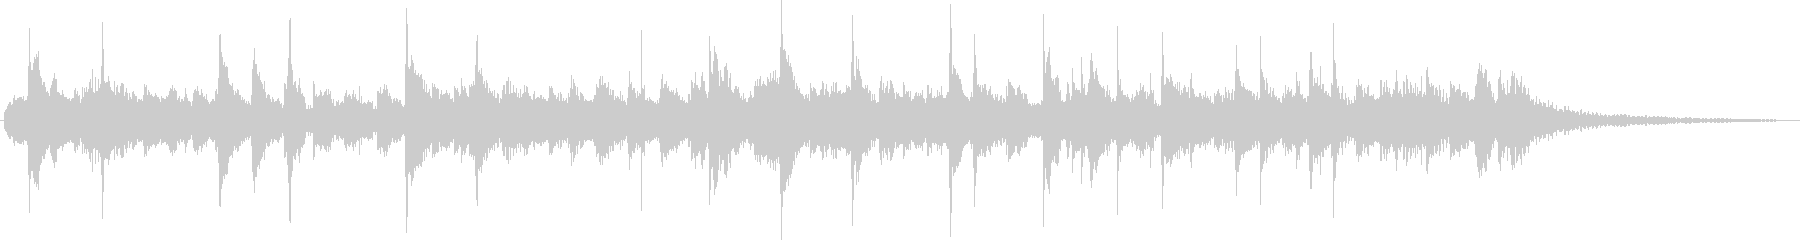 A mysterious jingle of Indian and Middle Eastern origin's unreproduced waveform